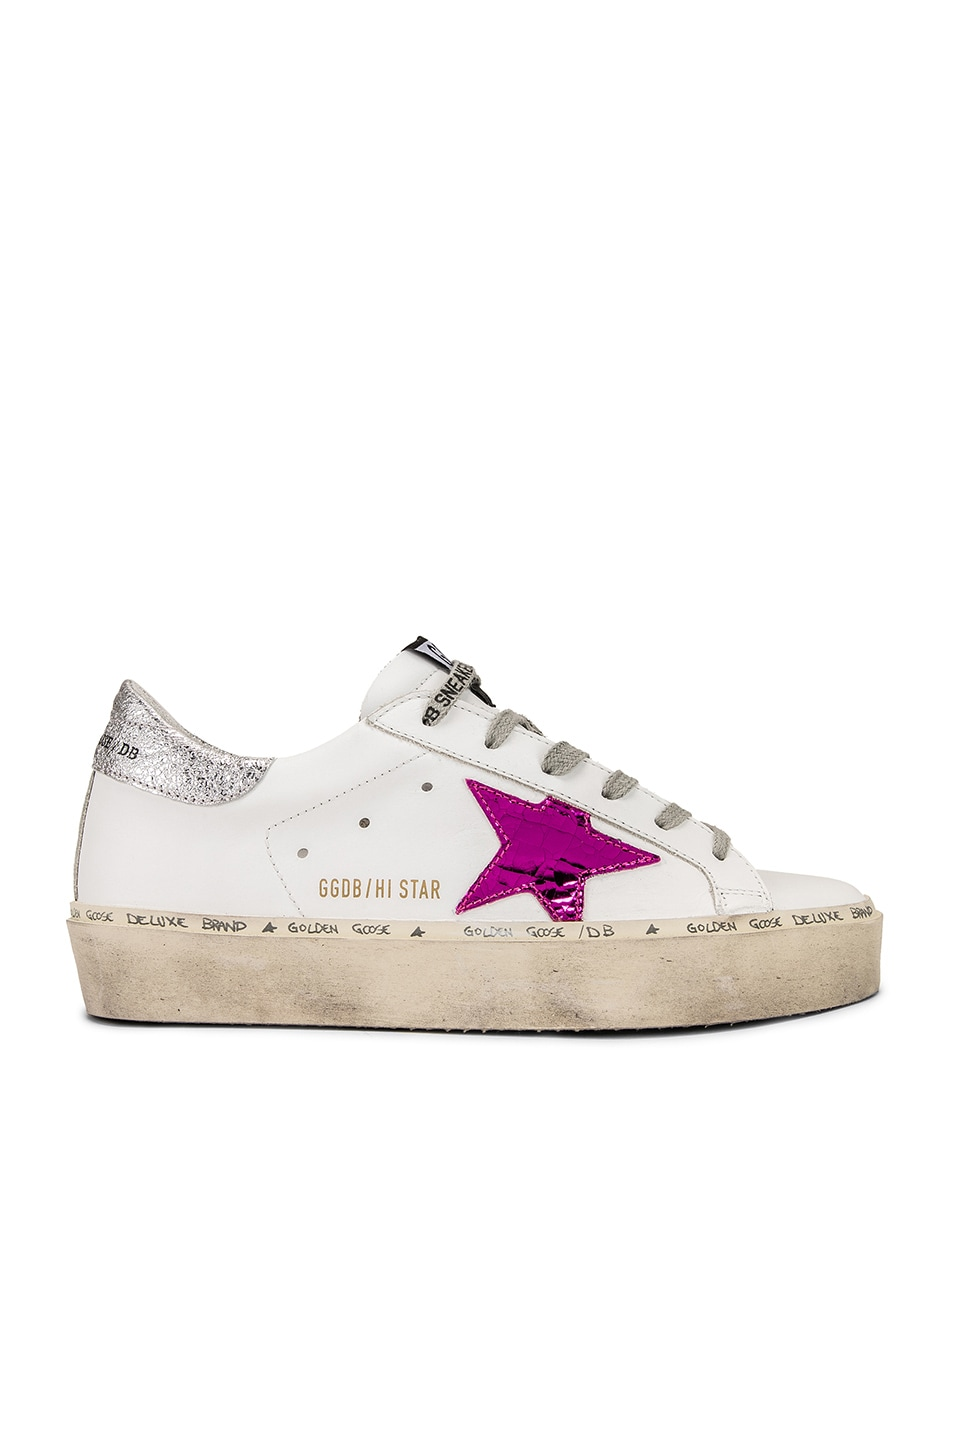 Image 2 of Golden Goose Hi Star Sneakers in White Leather & Silver Pink